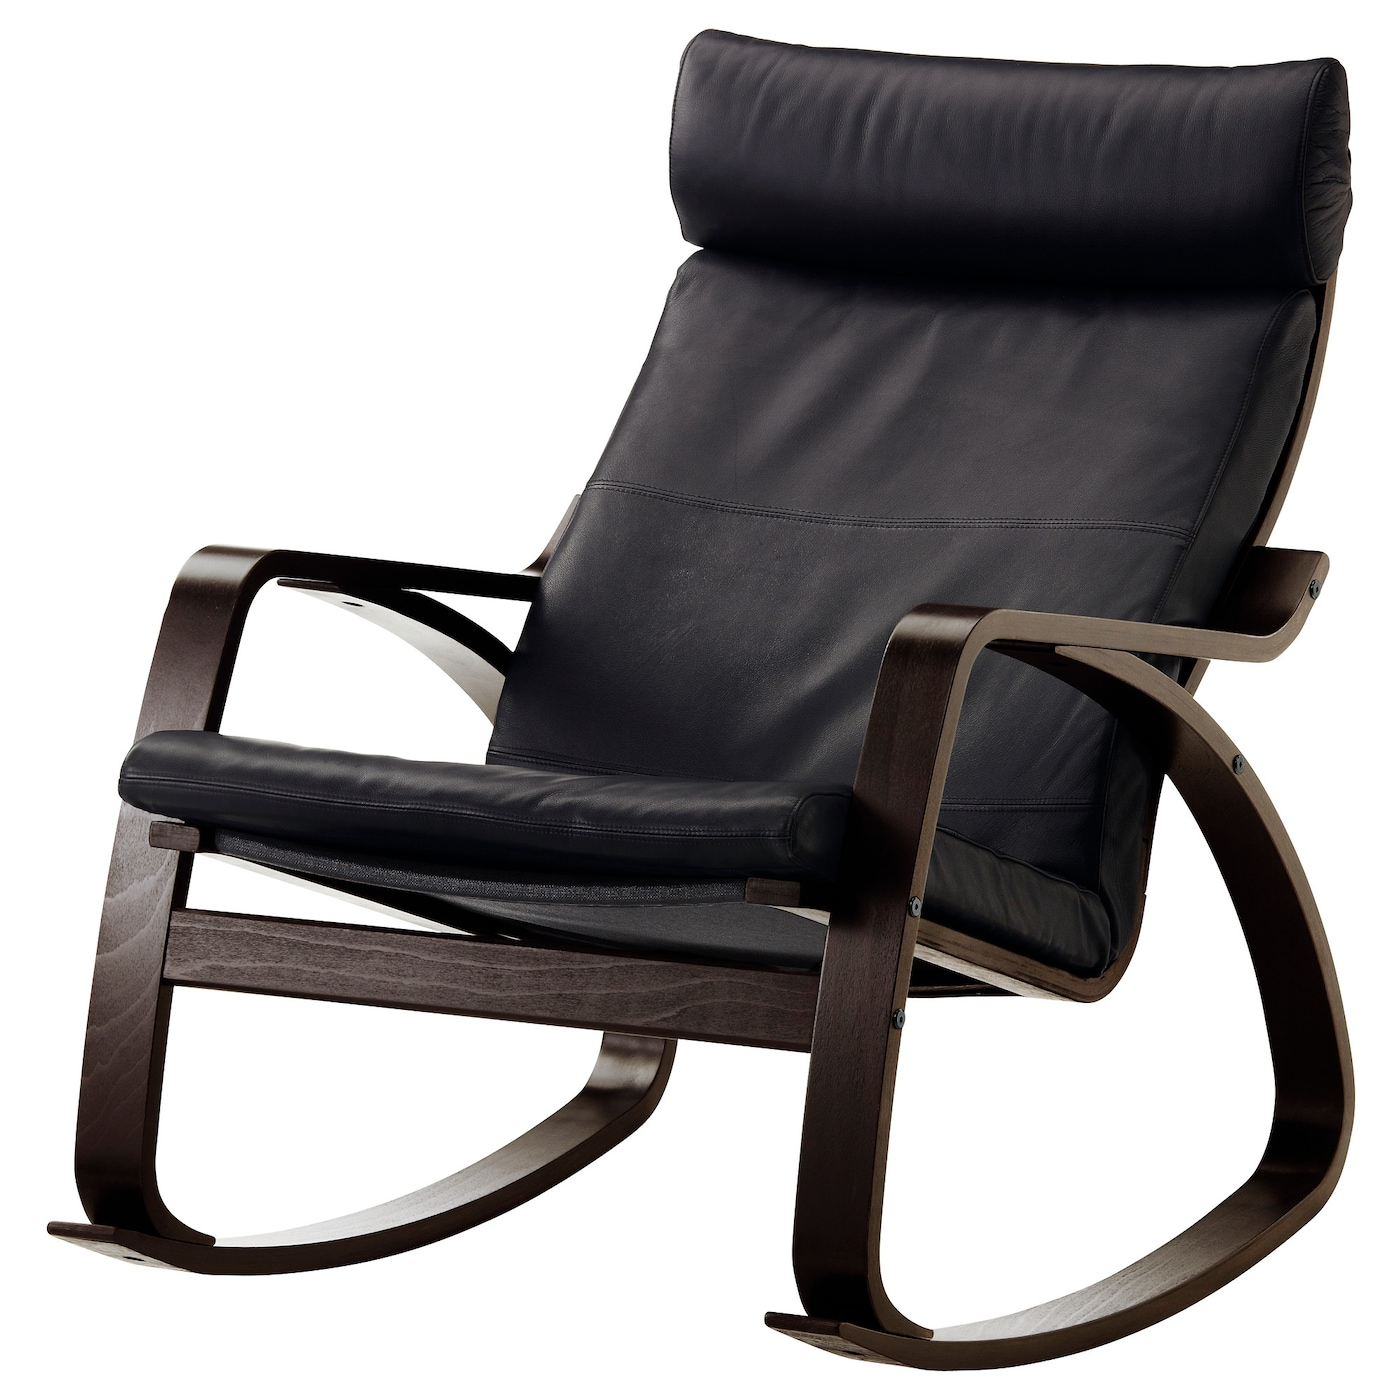 ikea poang chair black leather